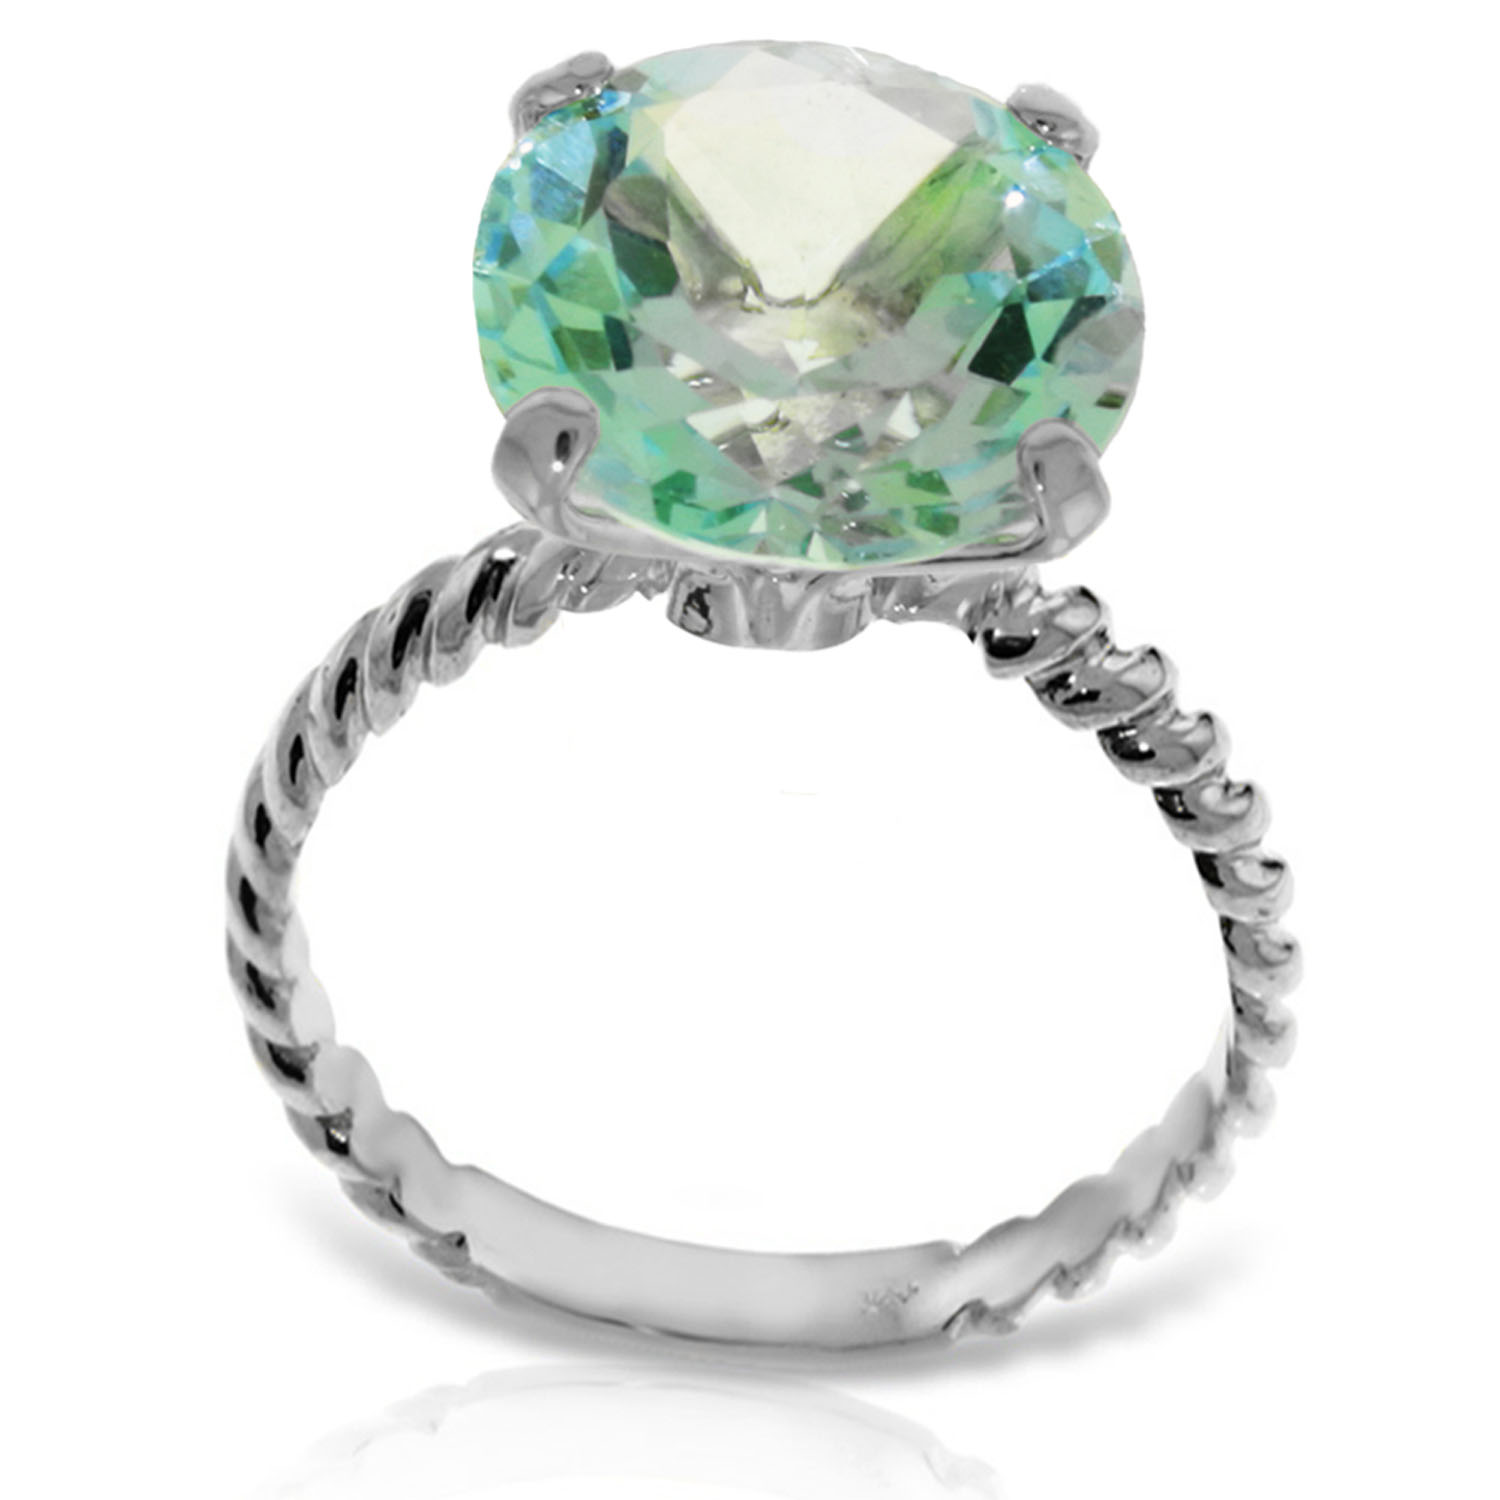 platinum plated 925 sterling silver ring w 12 0